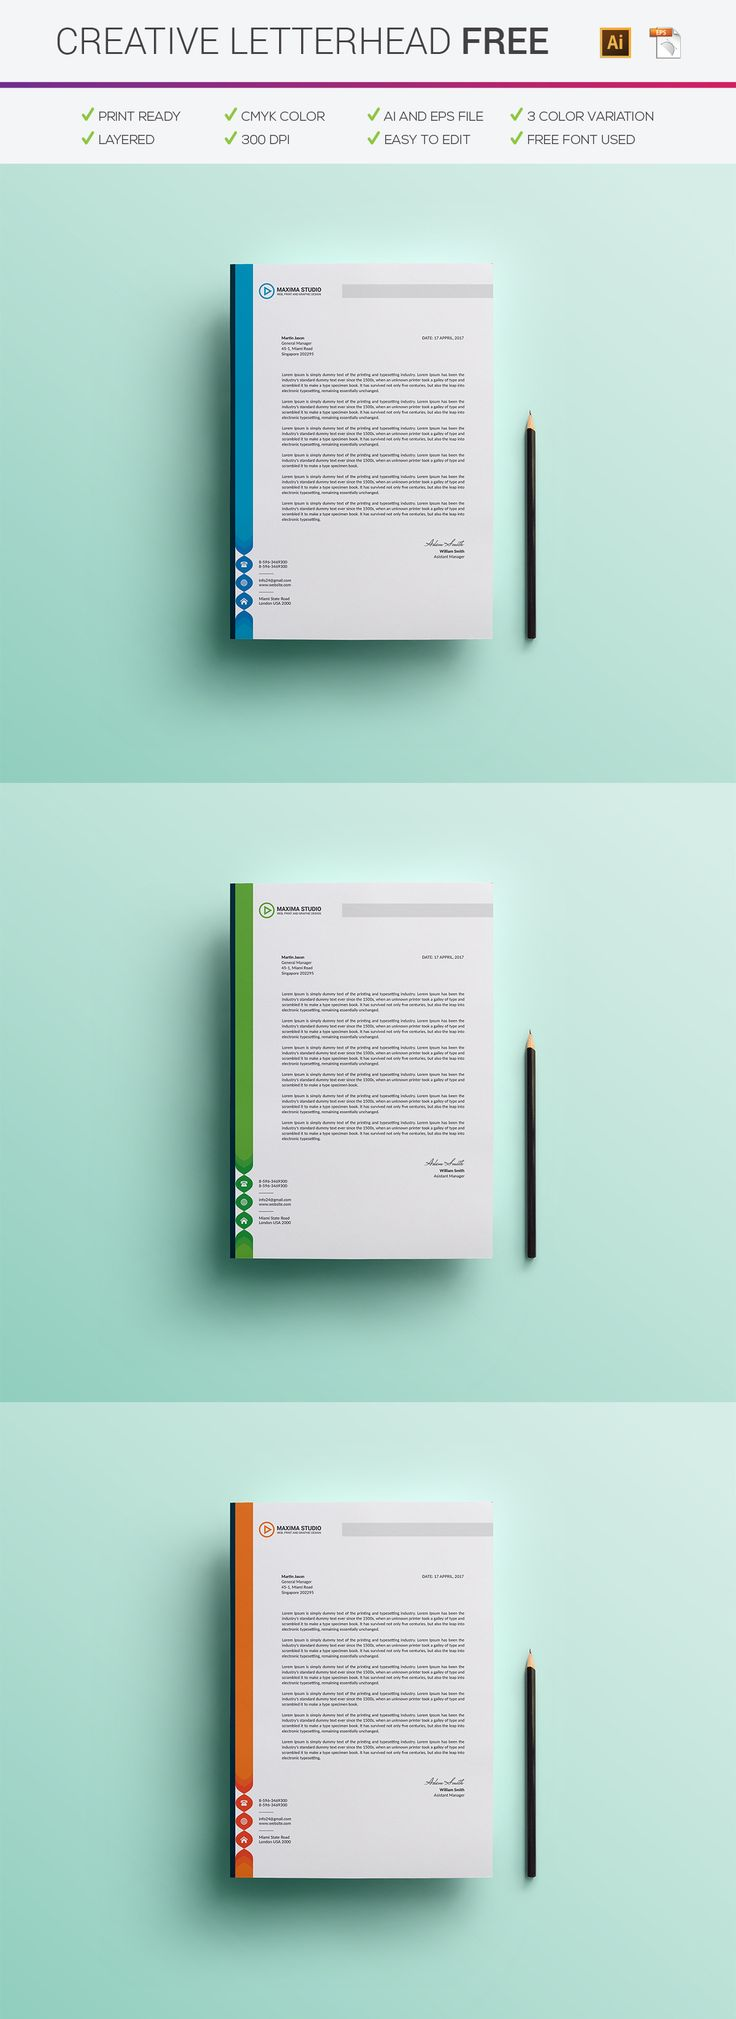 8 best letterhead design images on pinterest letterhead template buy letterhead by maximastudio on graphicriver letterhead design features illustratorai and eps file print dimension without bleeds 300 dpi resoluti spiritdancerdesigns Gallery